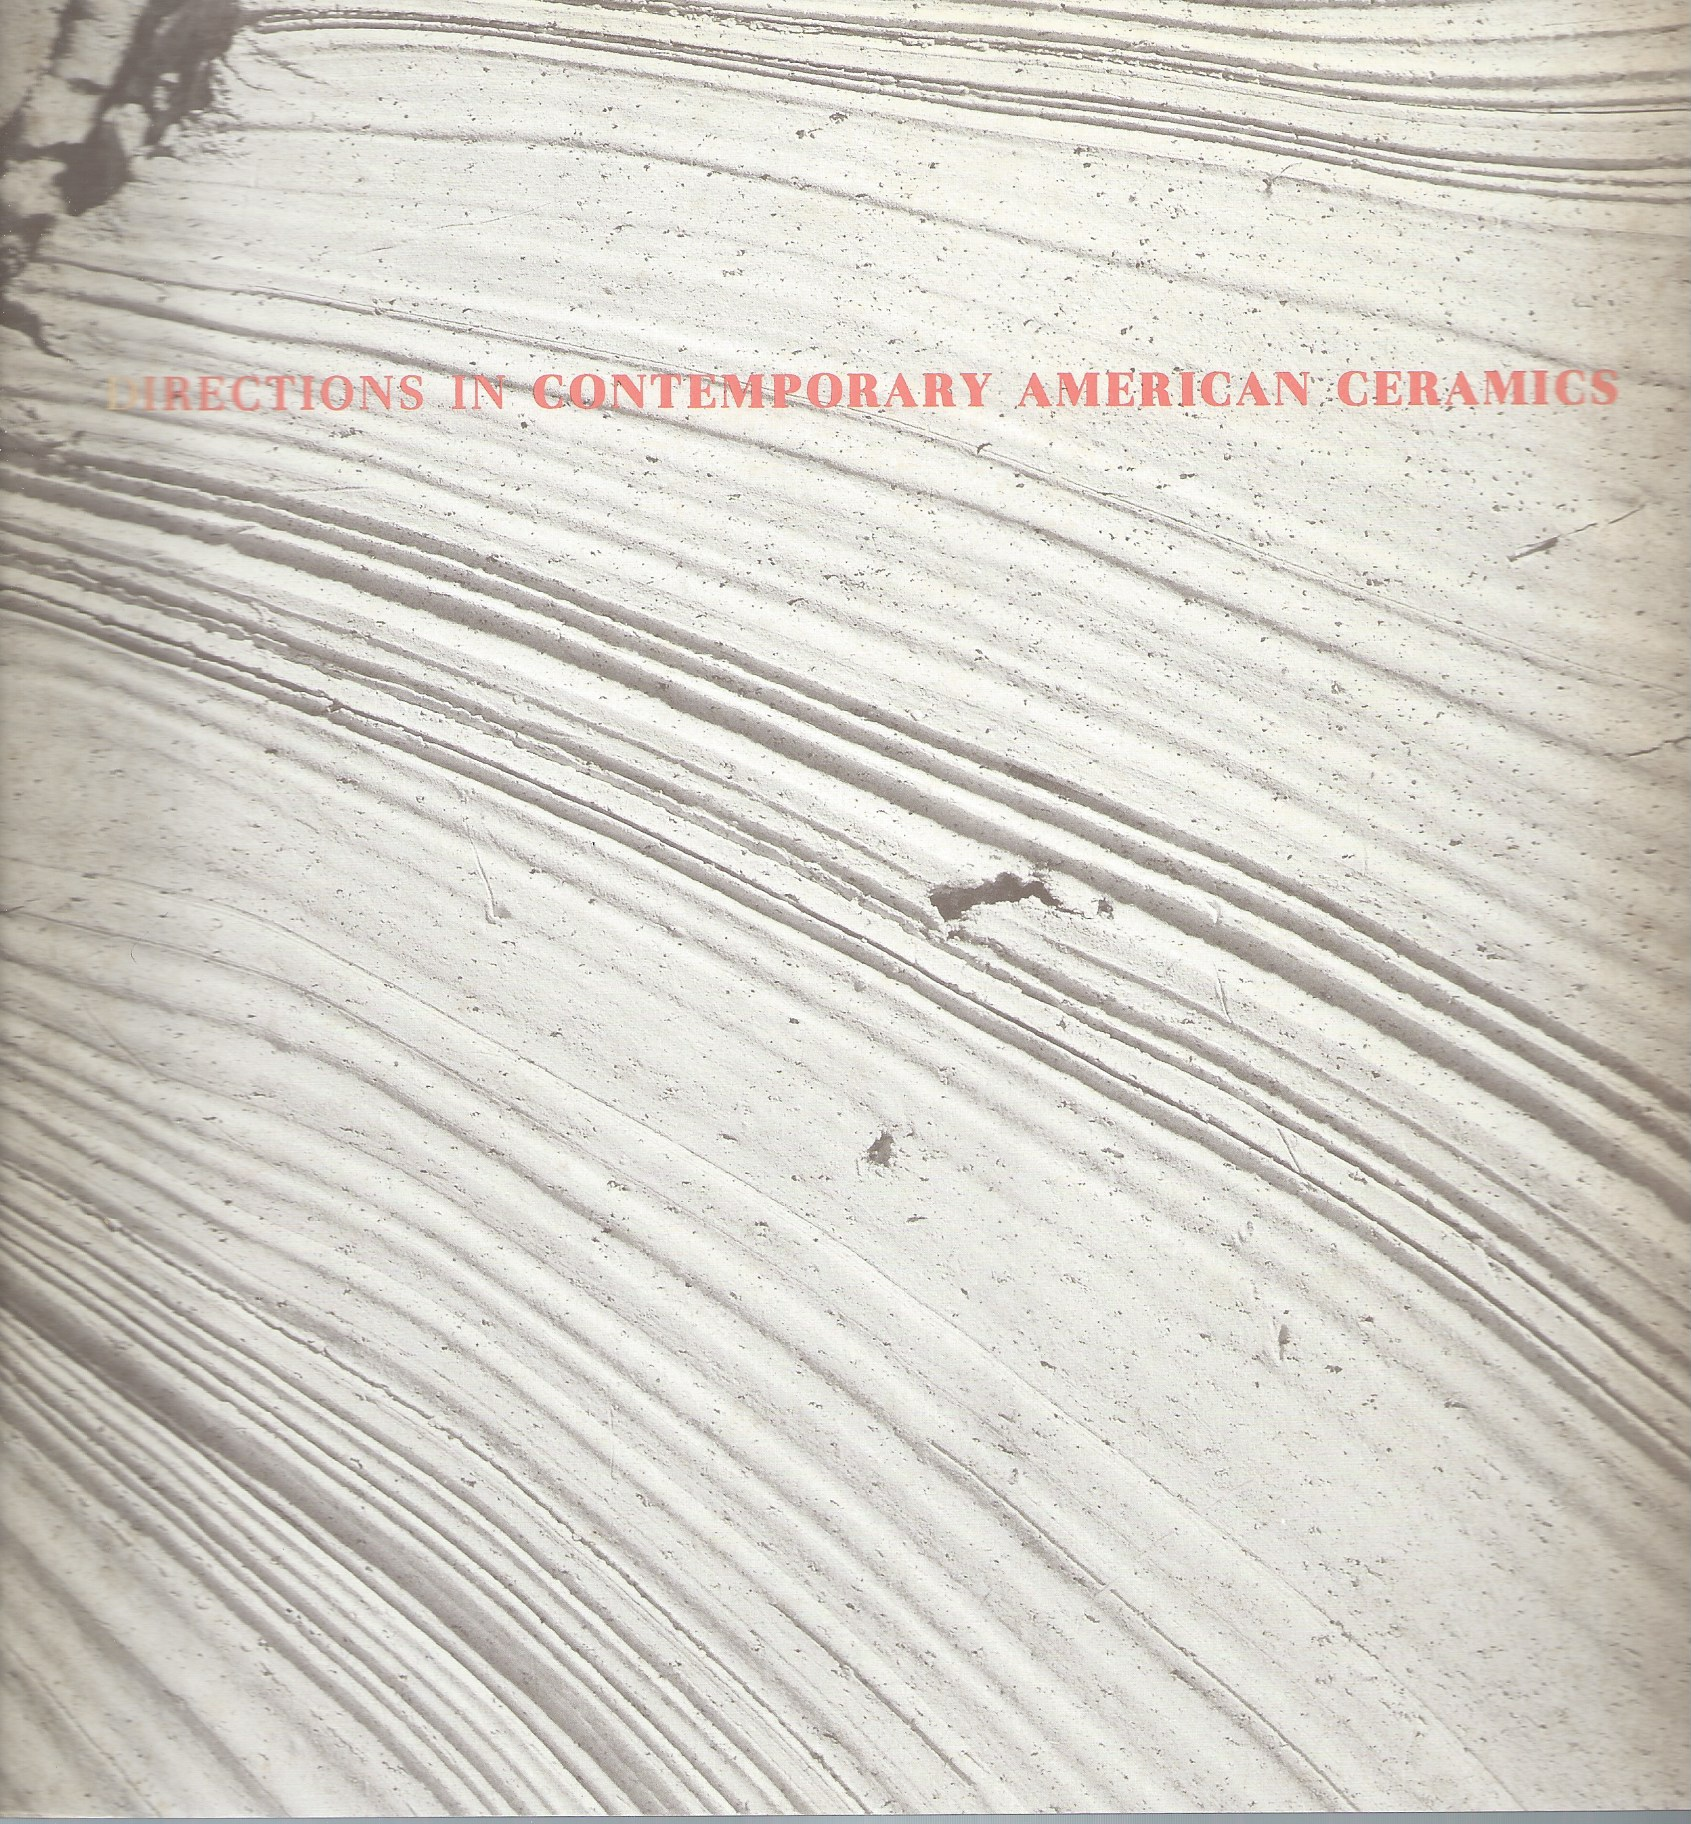 Image for DIRECTIONS IN CONTEMPORARY AMERICAN CERAMICS - 2/25-6/3, 1984